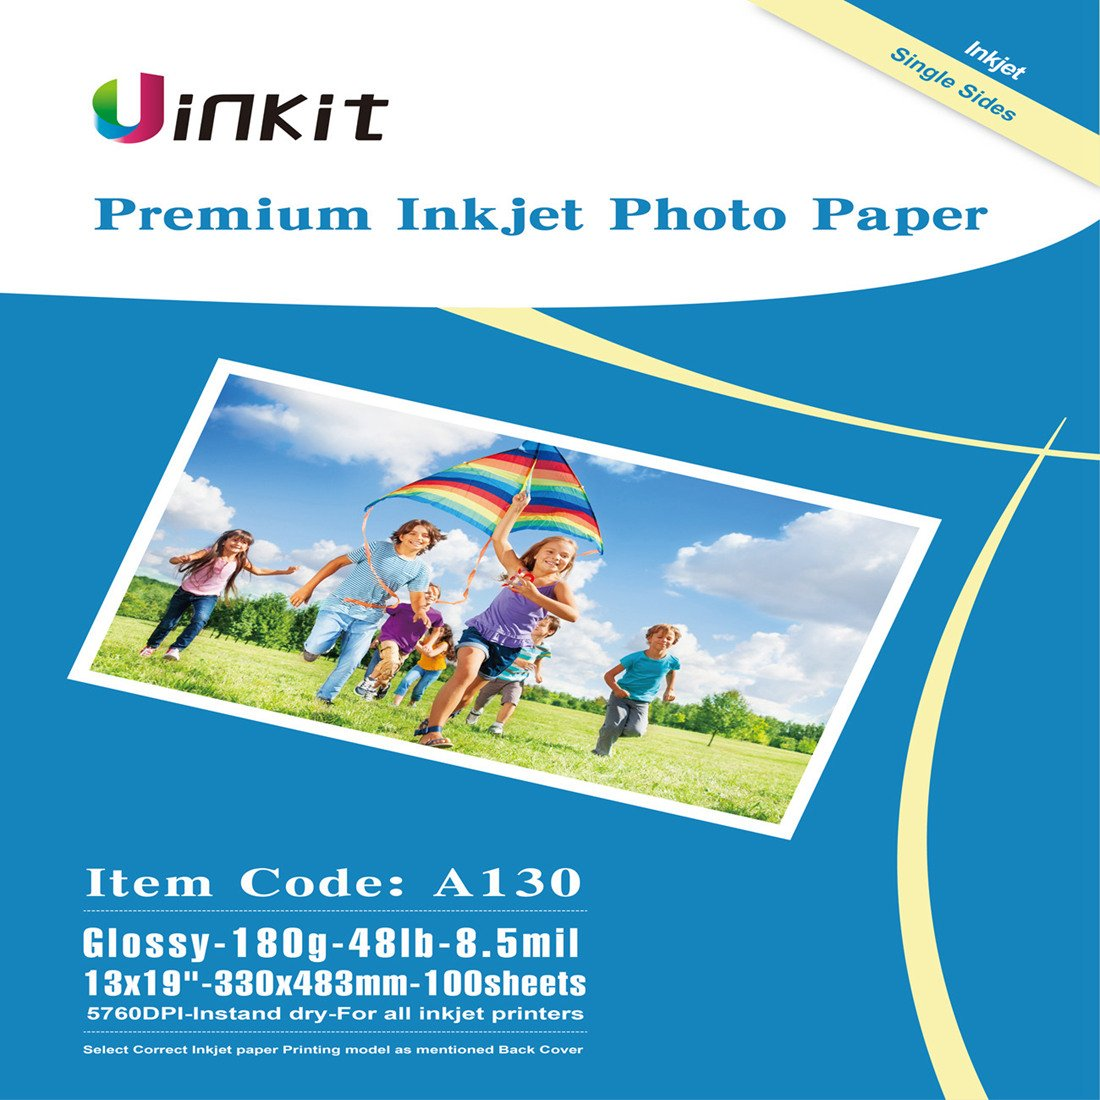 Glossy Photo Paper 13x19 inches - Uinkit 100sheets 13x19 Inkjet Paper 8.5Mil 180Gsm Inkjet Printing Only